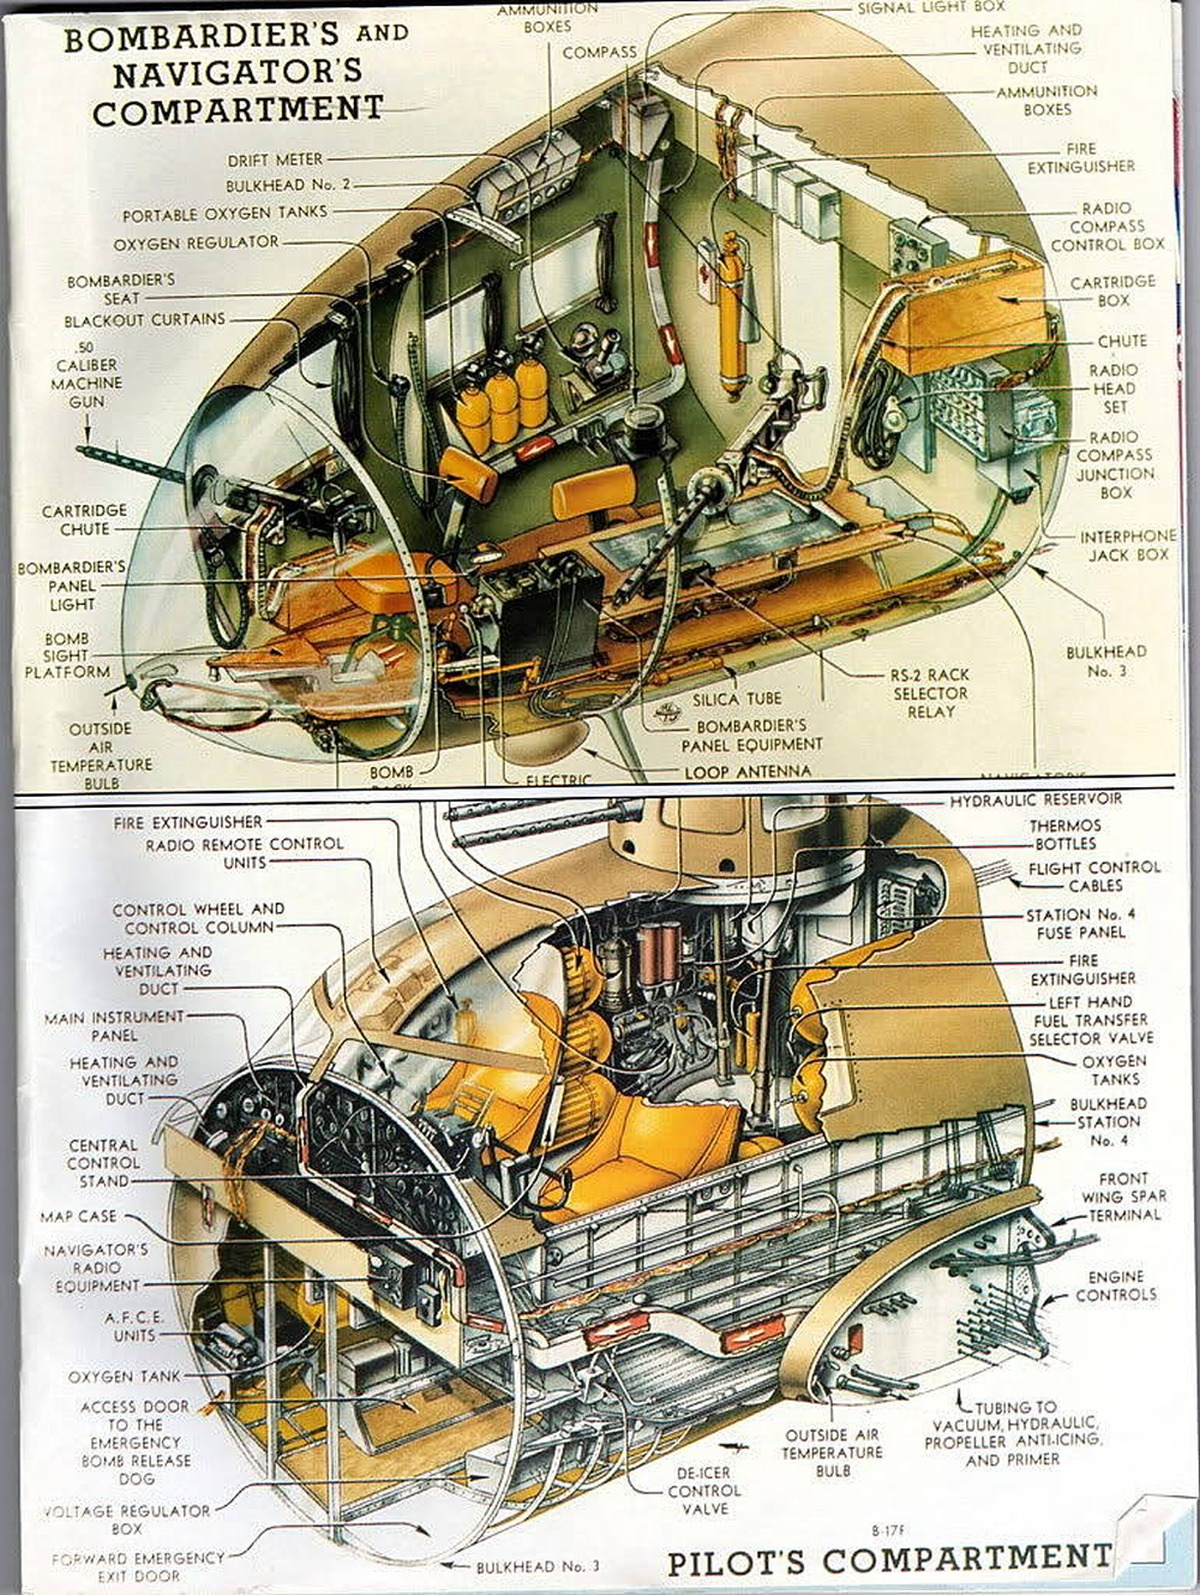 Cutaway Illustration of a B-17 Bomber